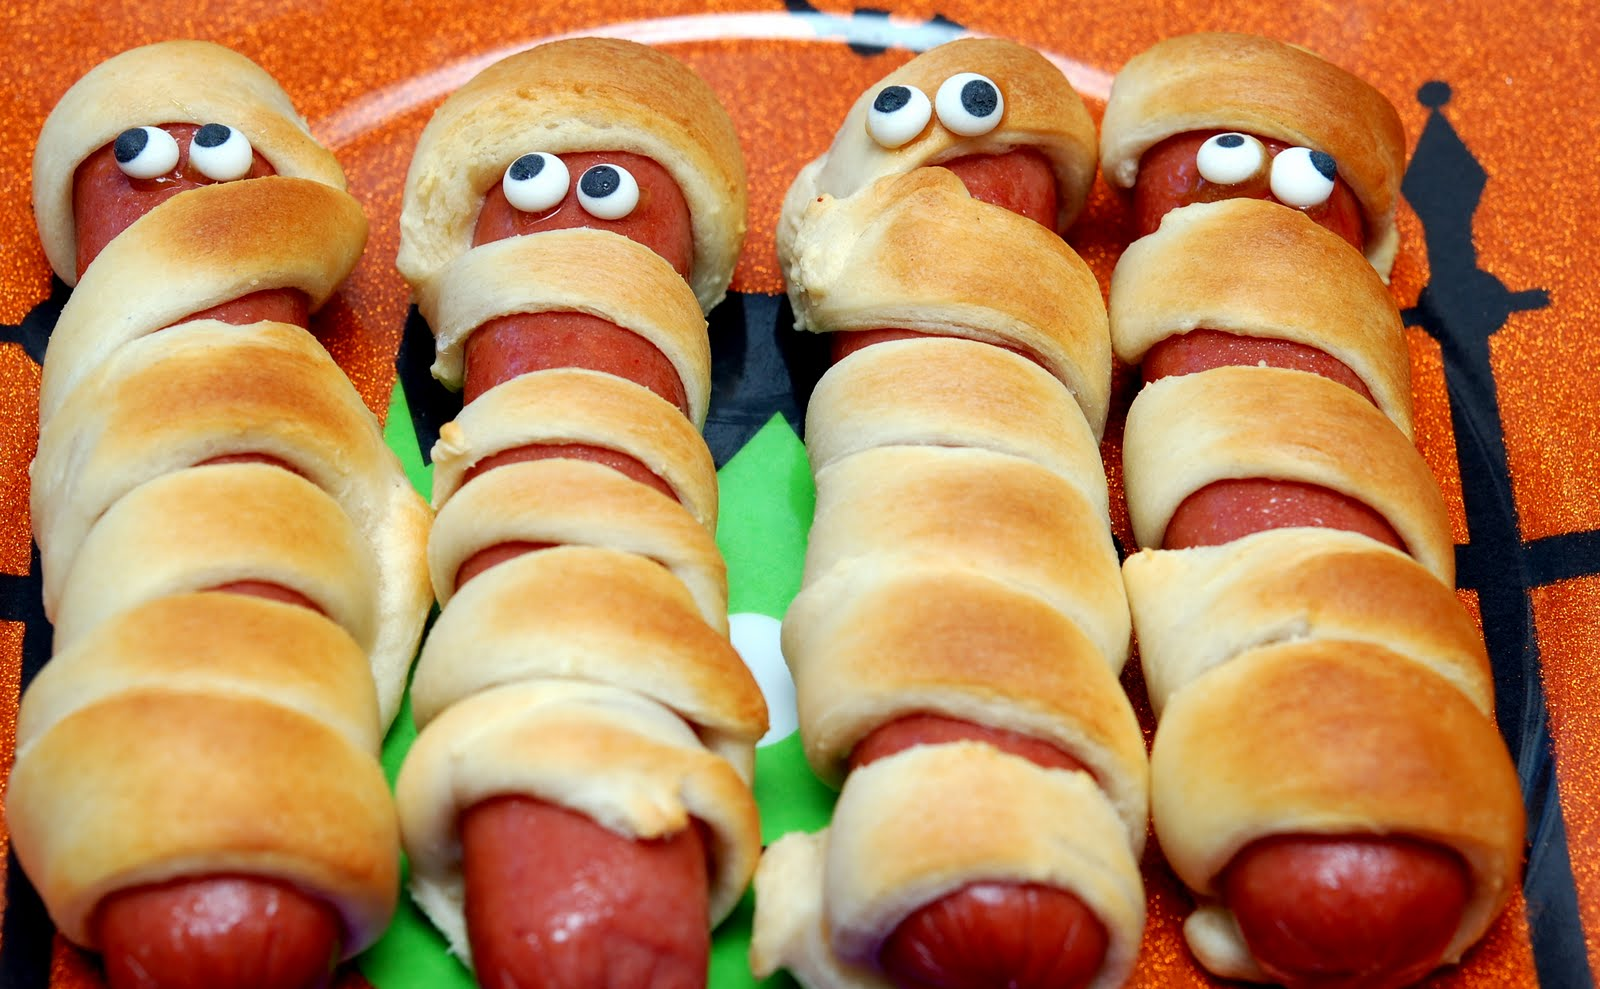 SUPER EASY! WRAP PILLSBURY CRESCENT ROLLS AROUND HOT DOGS. BAKE ...